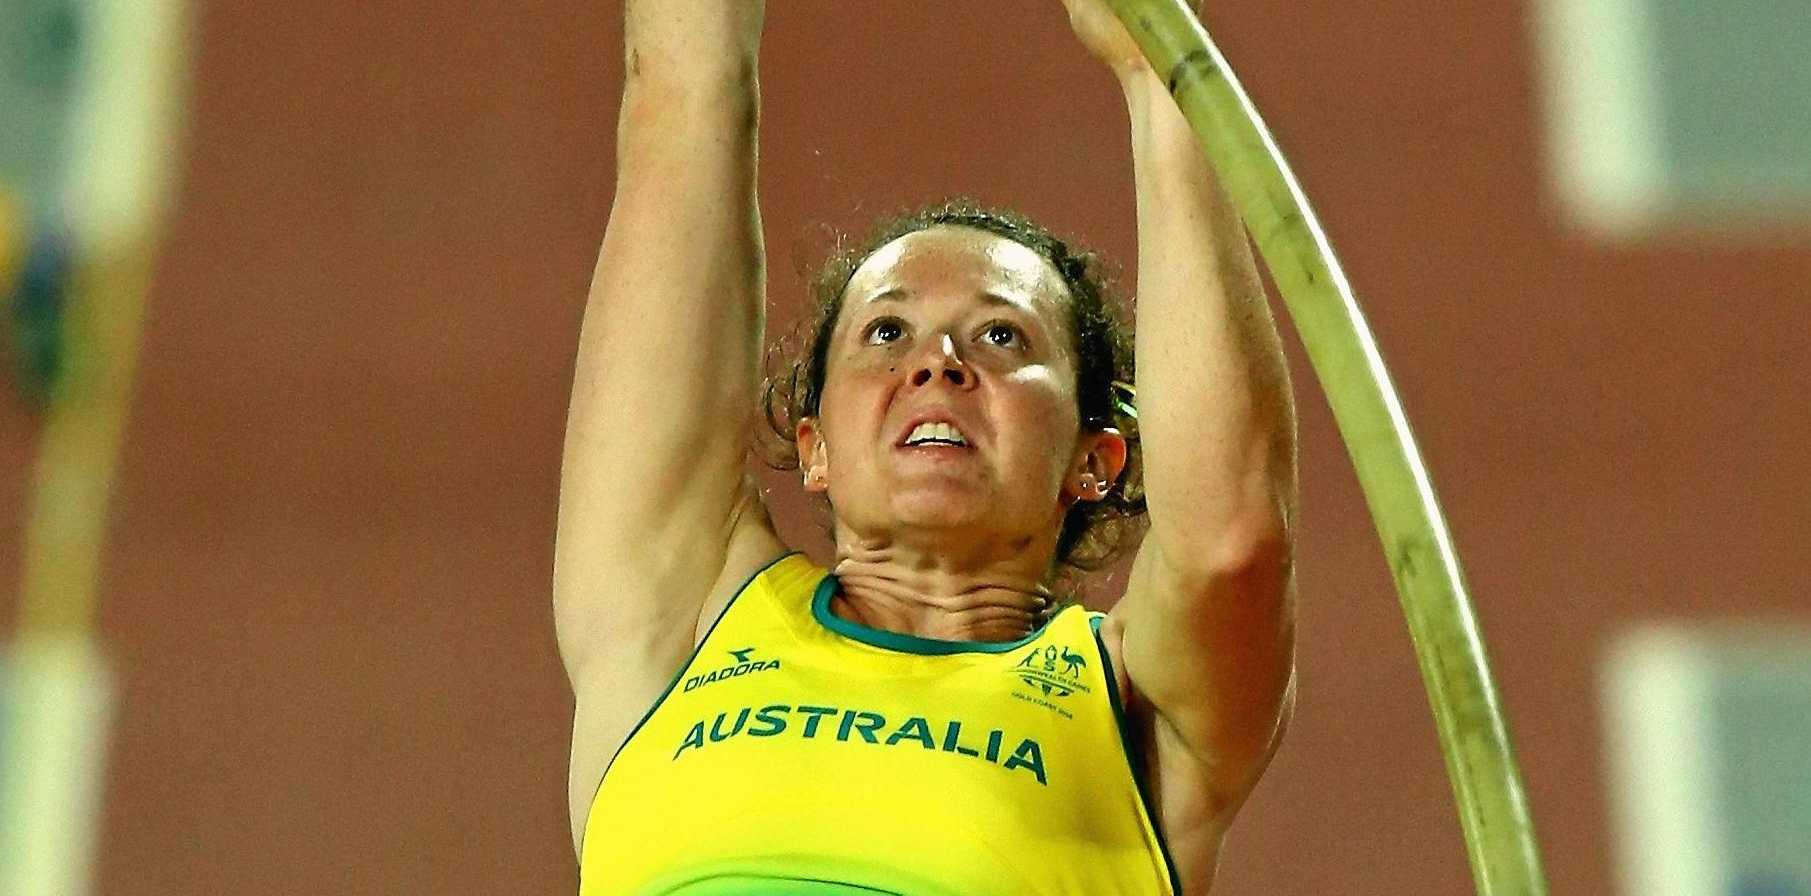 GOLD COAST, AUSTRALIA - APRIL 13:  Lisa Campbell of Australia competes in the Women's Pole Vault final during athletics on day nine of the Gold Coast 2018 Commonwealth Games at Carrara Stadium on April 13, 2018 on the Gold Coast, Australia.  (Photo by Michael Dodge/Getty Images)